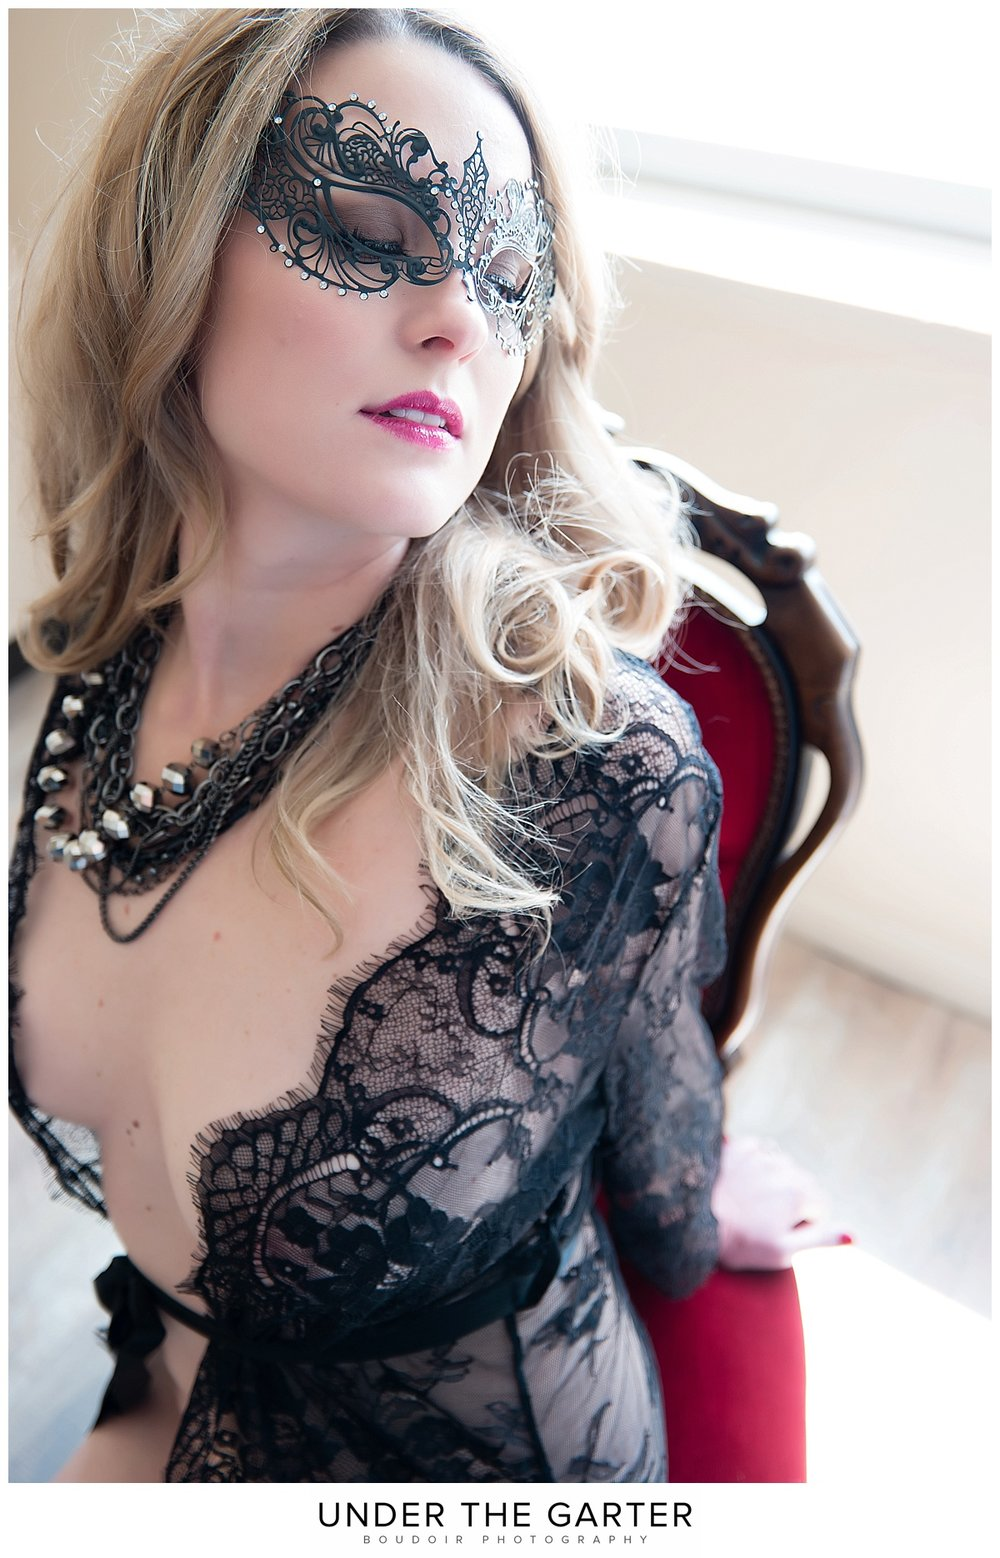 boudoir photography denver mask black lace.jpg